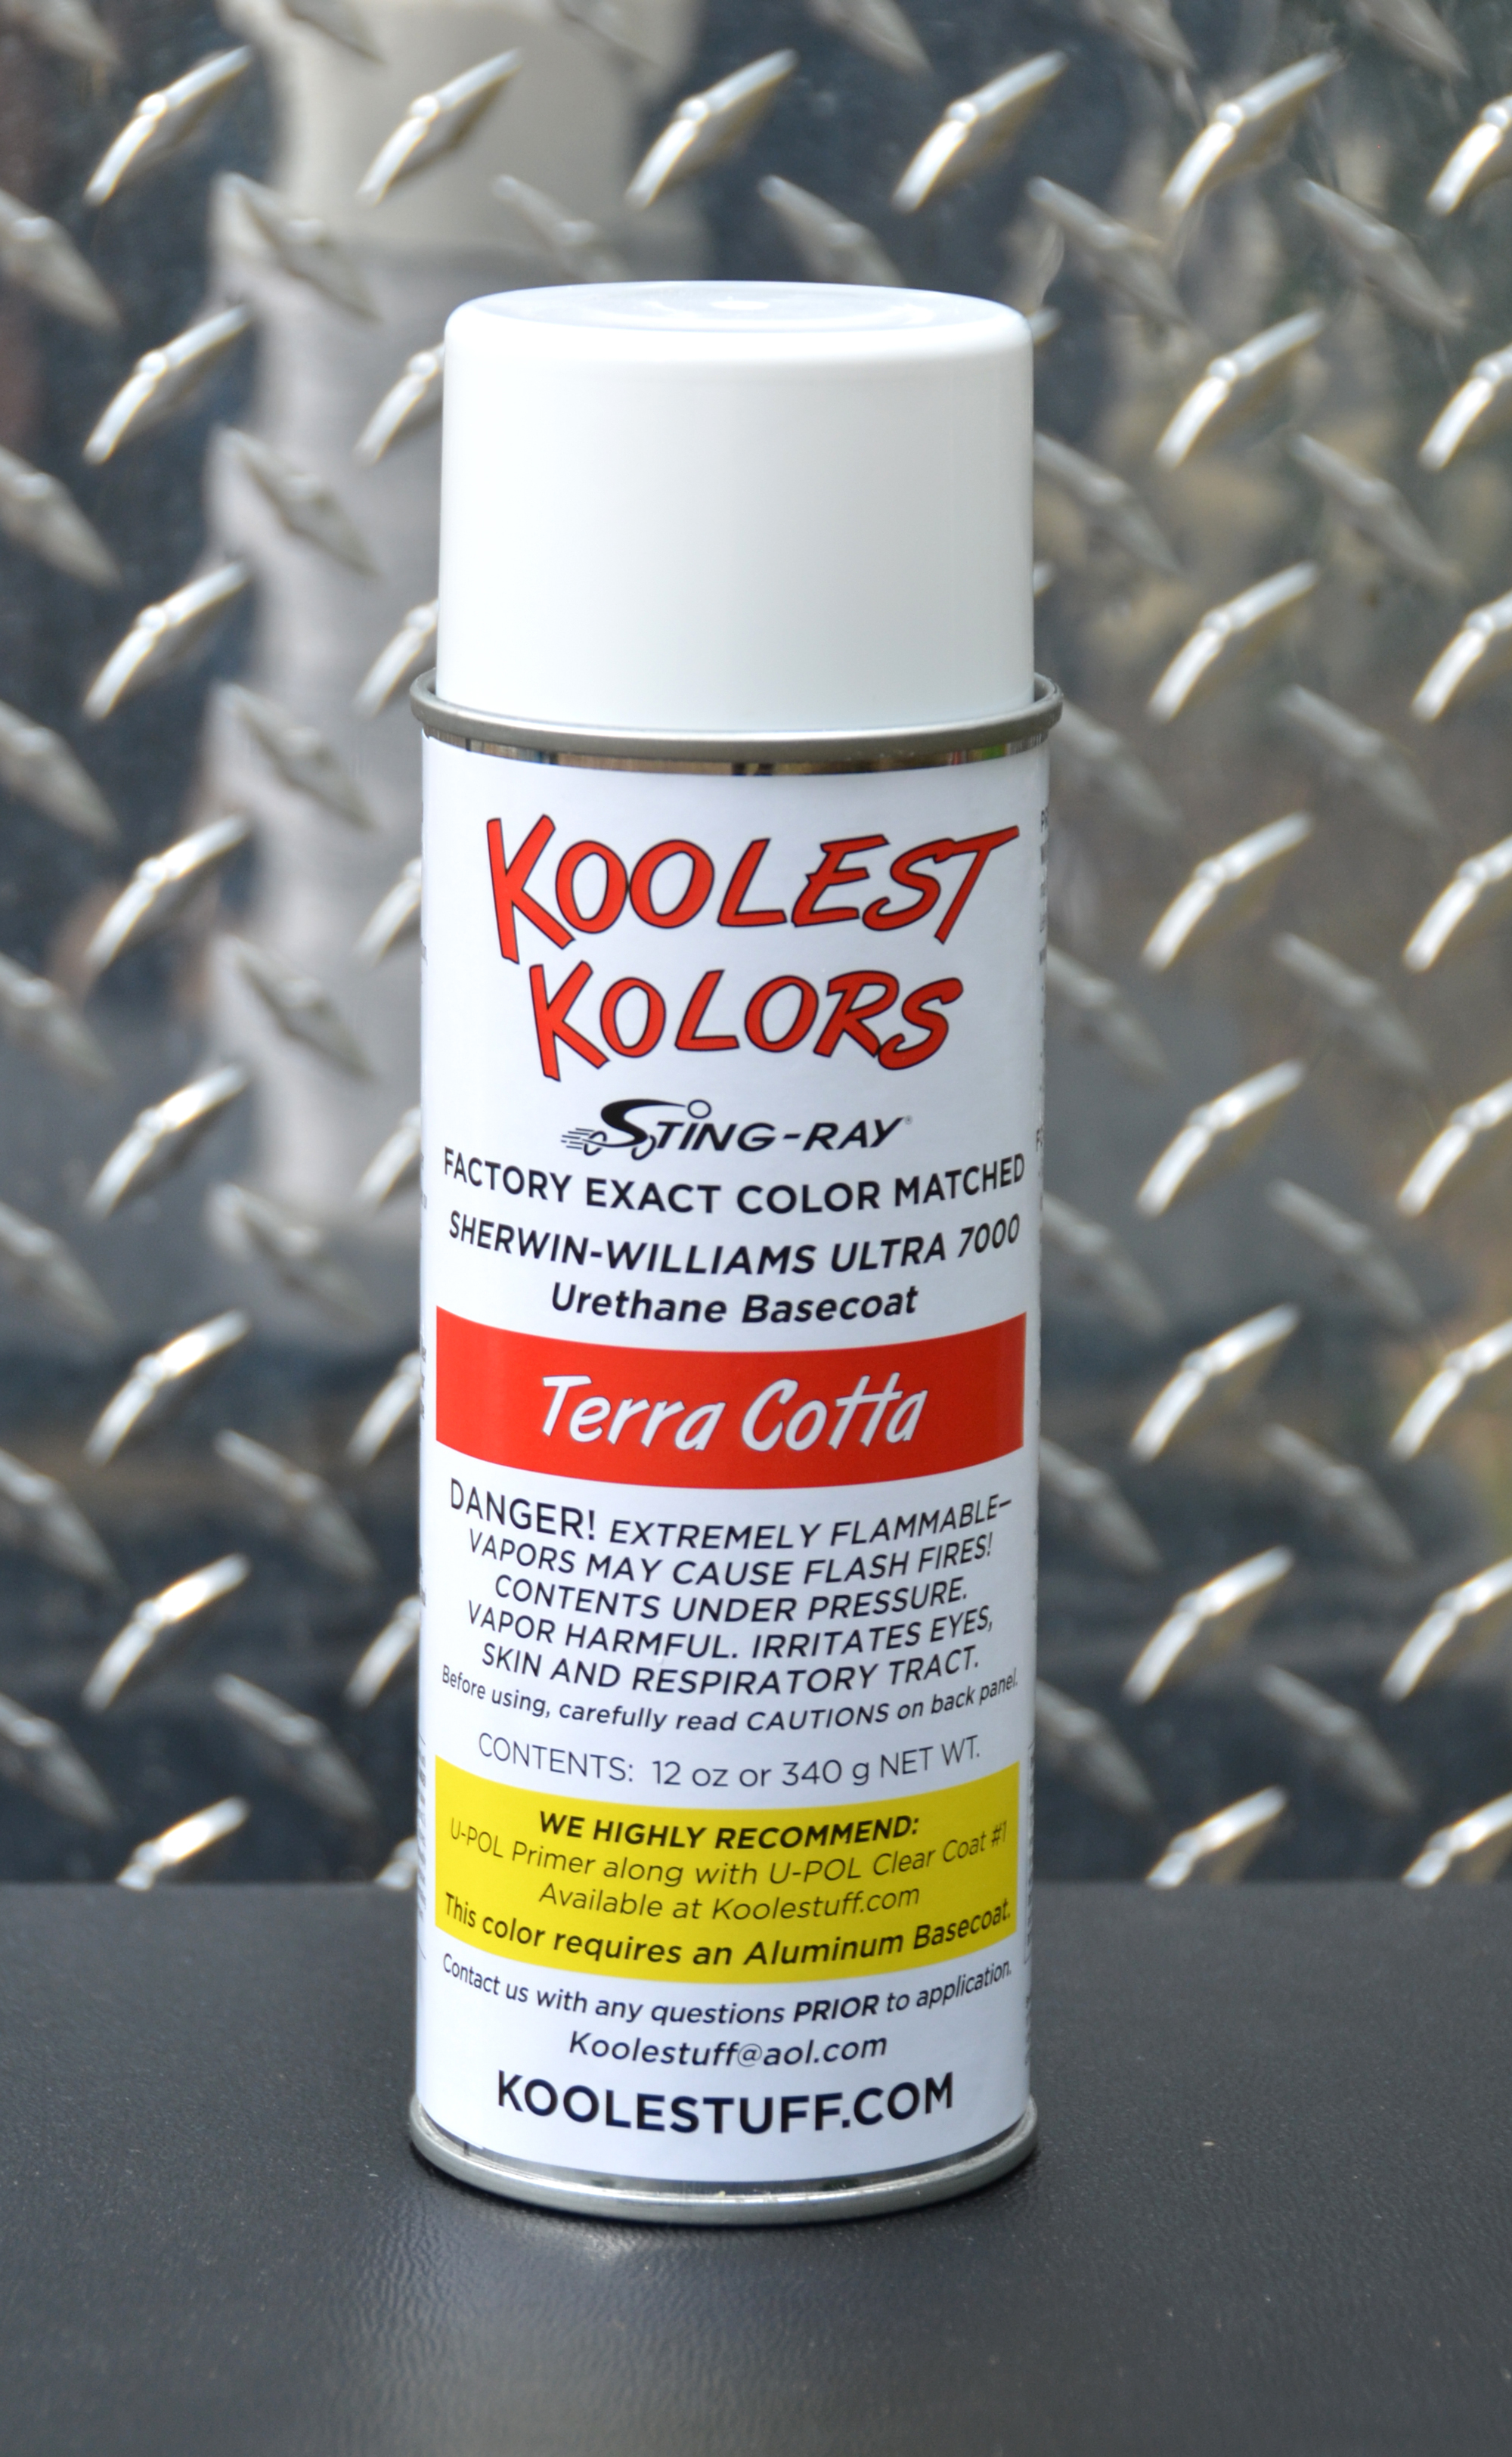 Koolest Kolors Aerosol Spray Paint